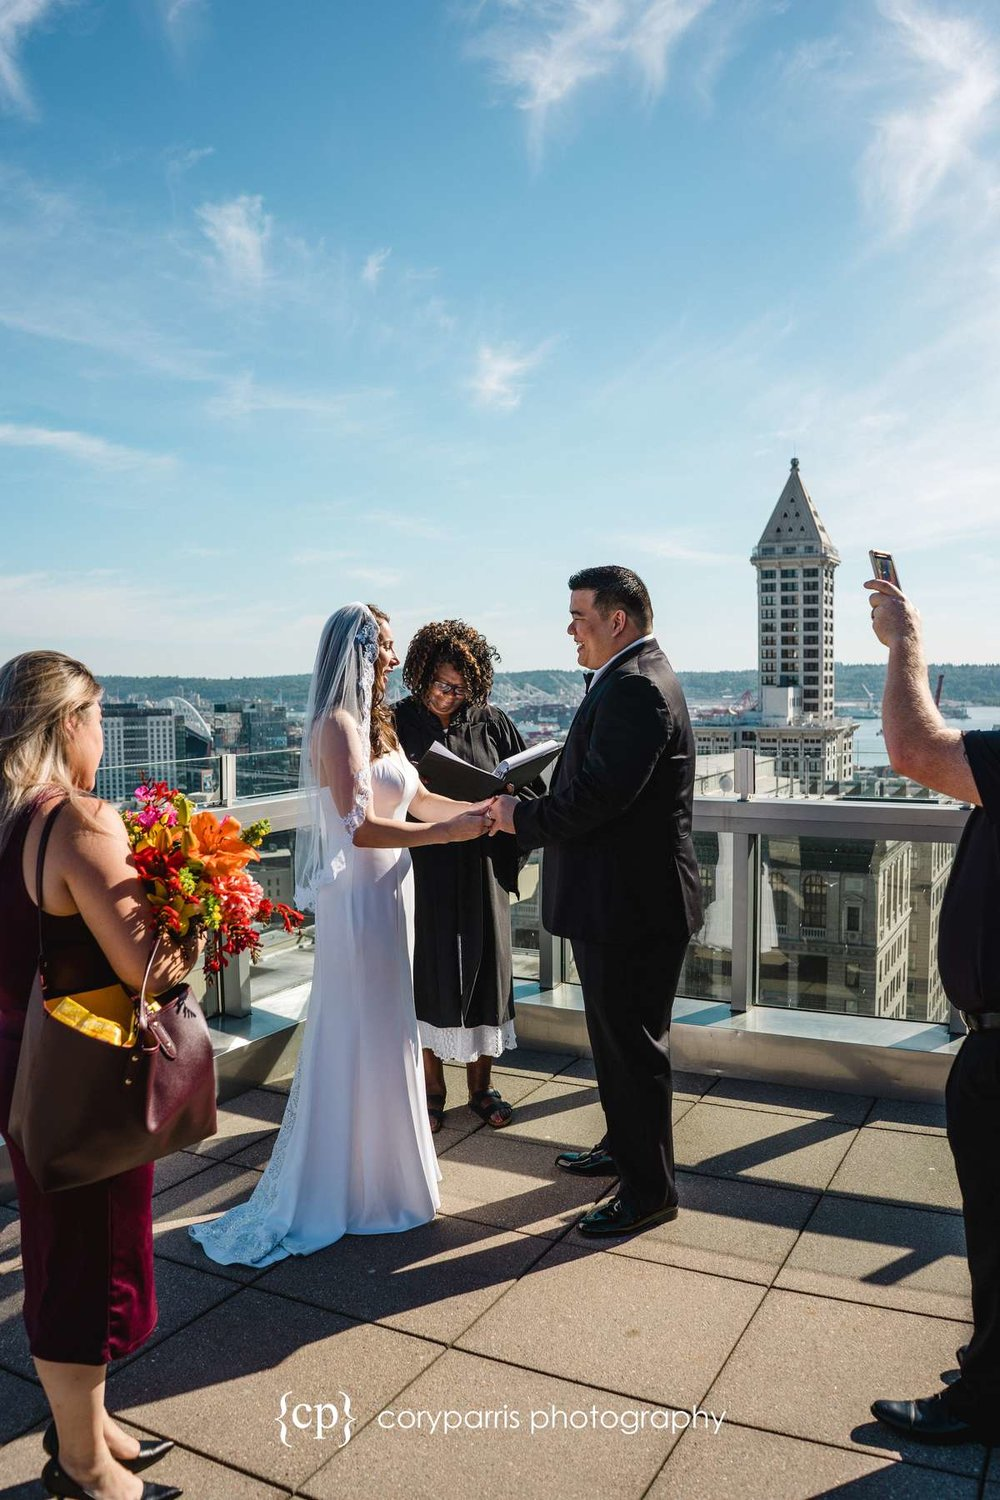 154-Seattle-Courthouse-Wedding-Photography.jpg